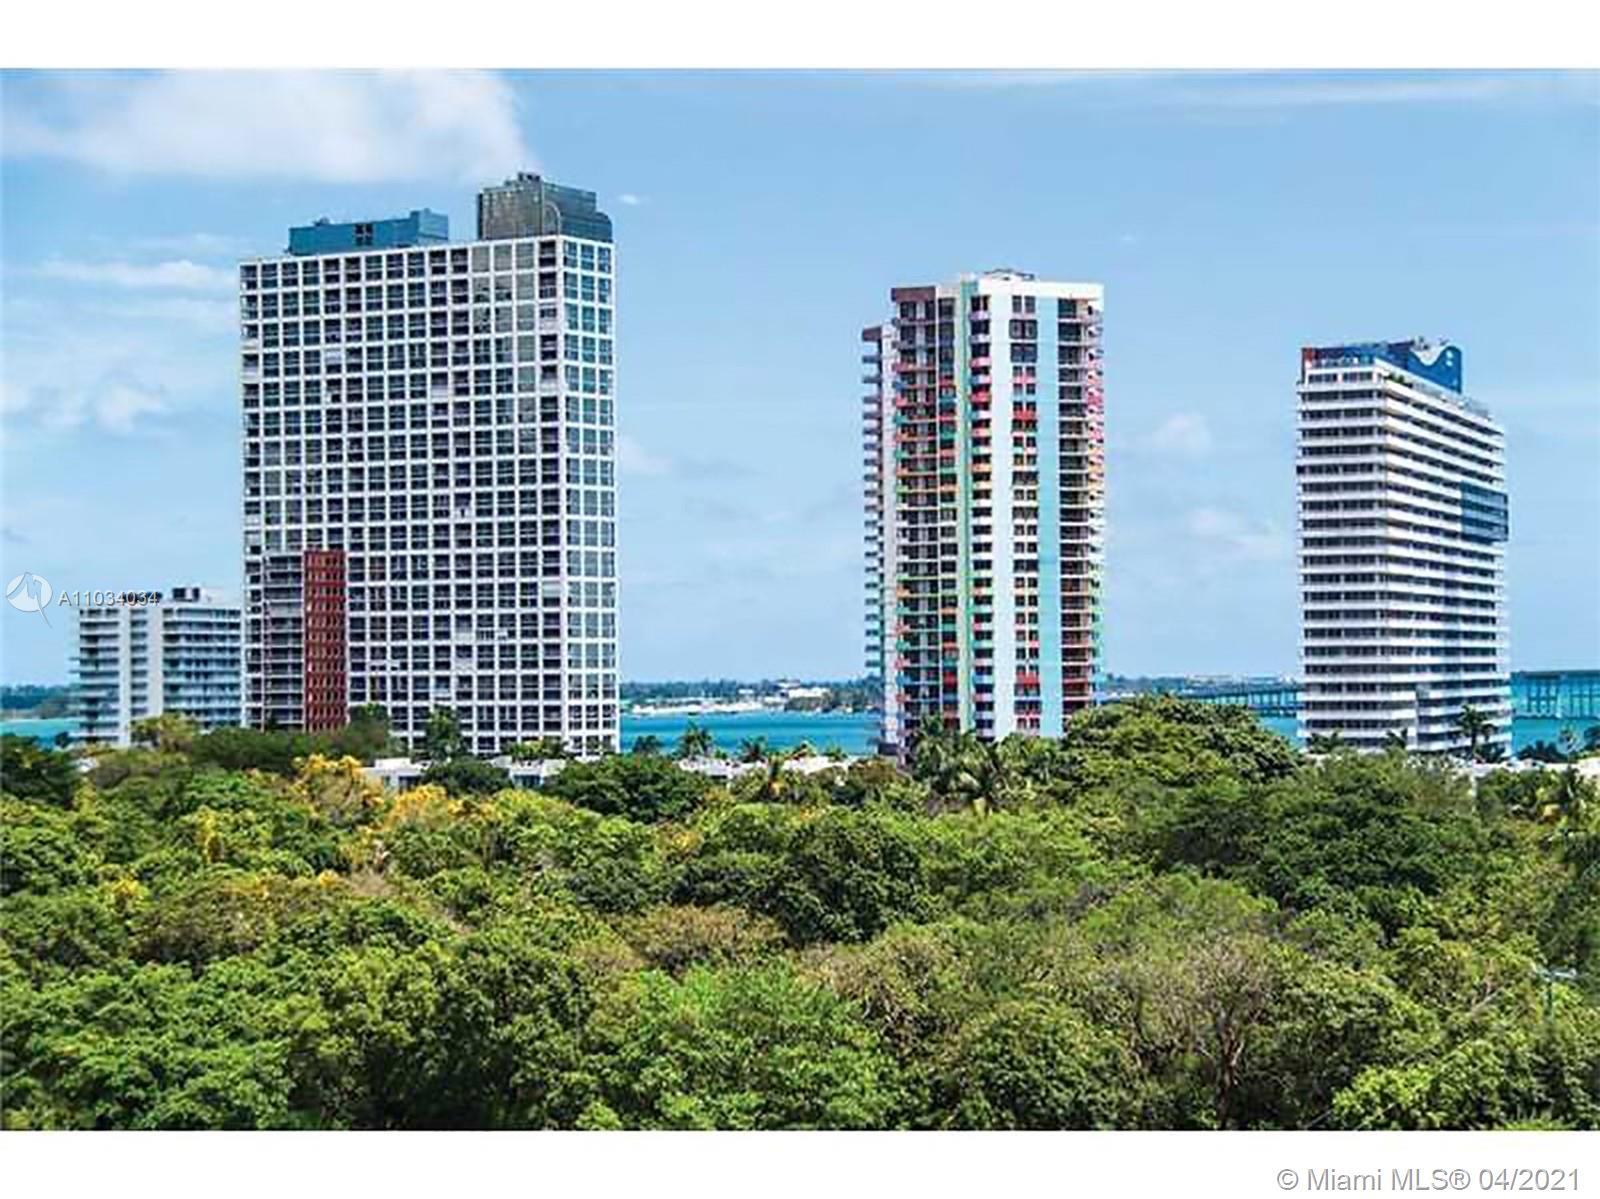 Amazing 2/2 unit at Le Parc Brickell.  Impeccable boutique building with just 128 units designed by architect Luis Revuelta. Privileged location with unobstructed views of Simpson Park. European style kitchen and bathroom cabinetry, stainless steel appliances and porcelain glass enclosed showers. 6 feet deep private glass balcony. Beautiful common areas including Pool, Spa, Fitness Center, Children Play Room.  Spacious-Indoor parking area, Roof-top sky lounge with Jacuzzi, Clubroom and state-of-the-art fitness center, Business lounge with conference room, Kid's entertainment room, Pet-friendly environment. Includes wi-fi Internet, Cable, water, 1 assigned parking space..